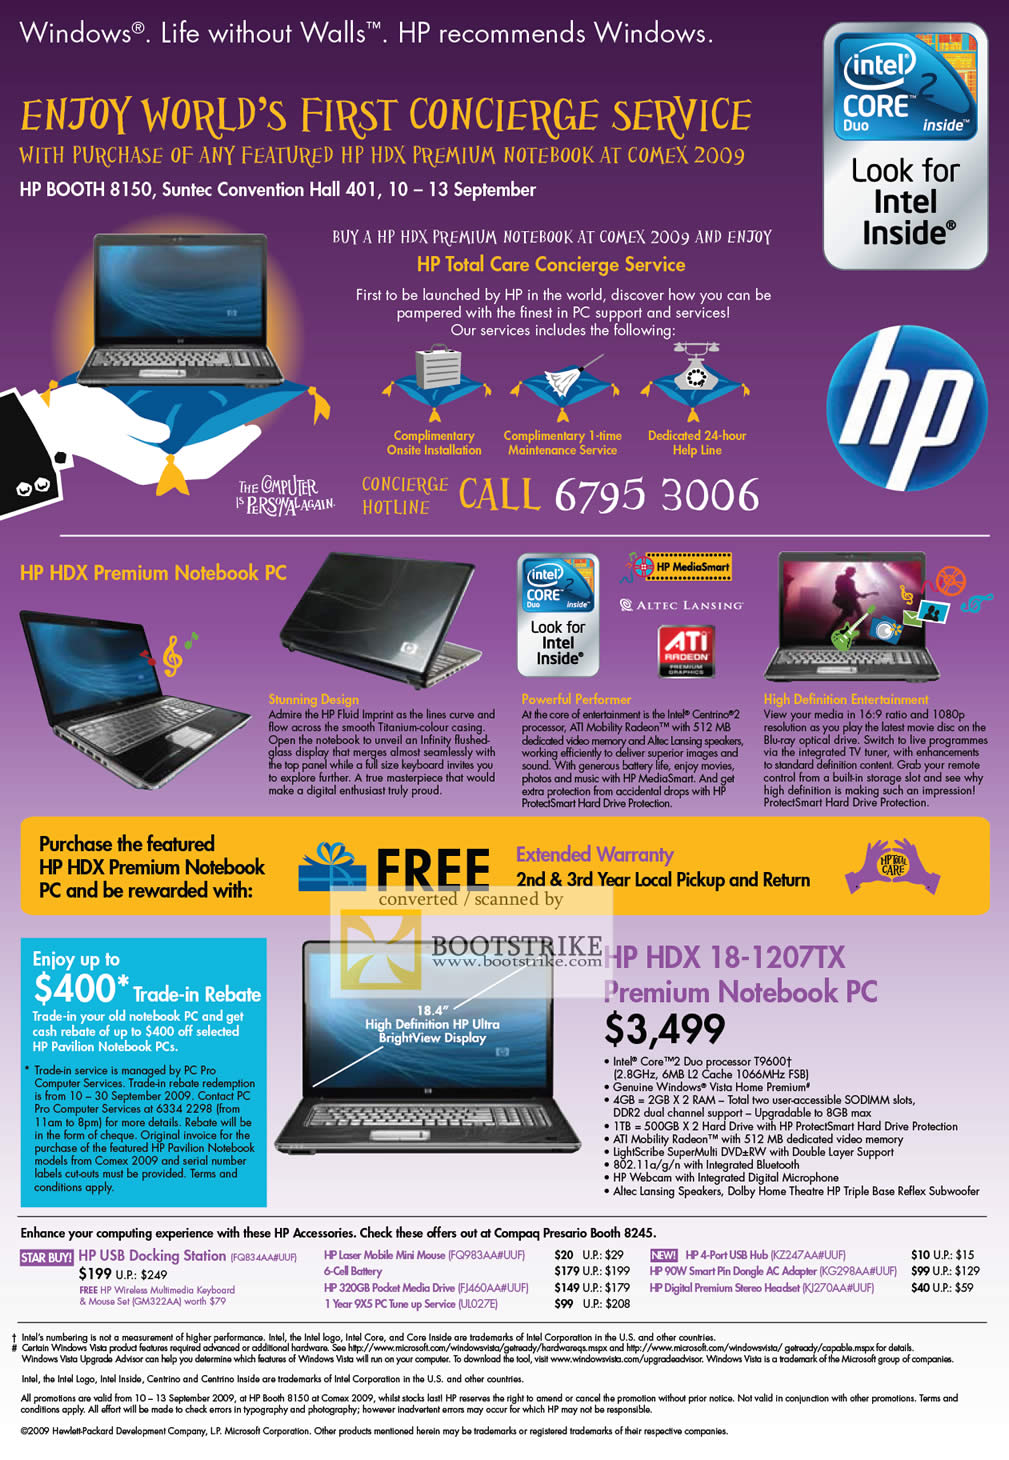 Comex 2009 price list image brochure of HP Concierge HDX 18-1207tx Premium Notebook PC